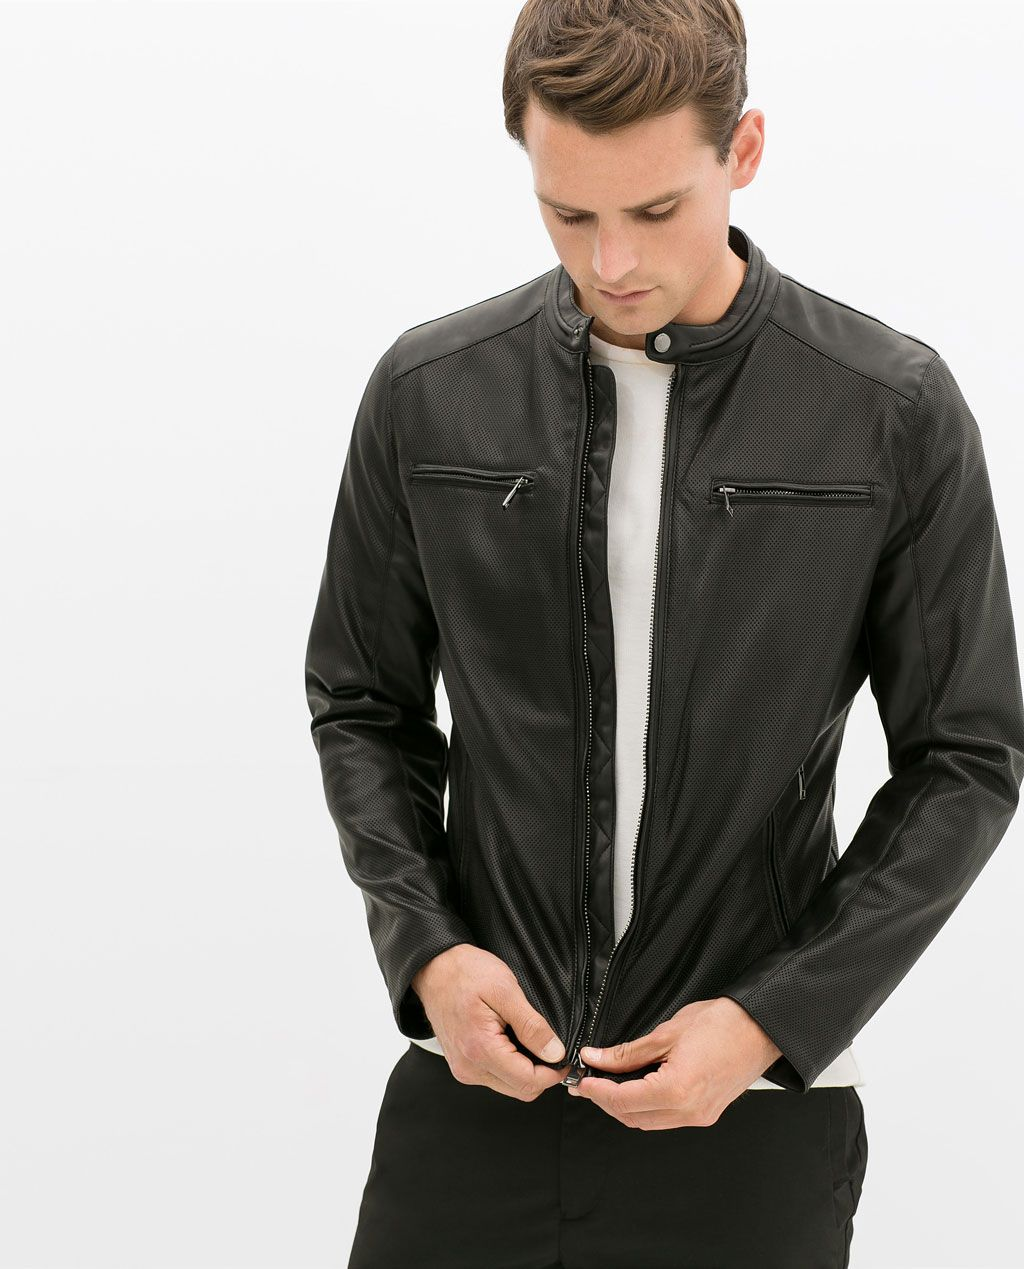 Zara Man Perforated Faux Leather Jacket My Fashion Taste In